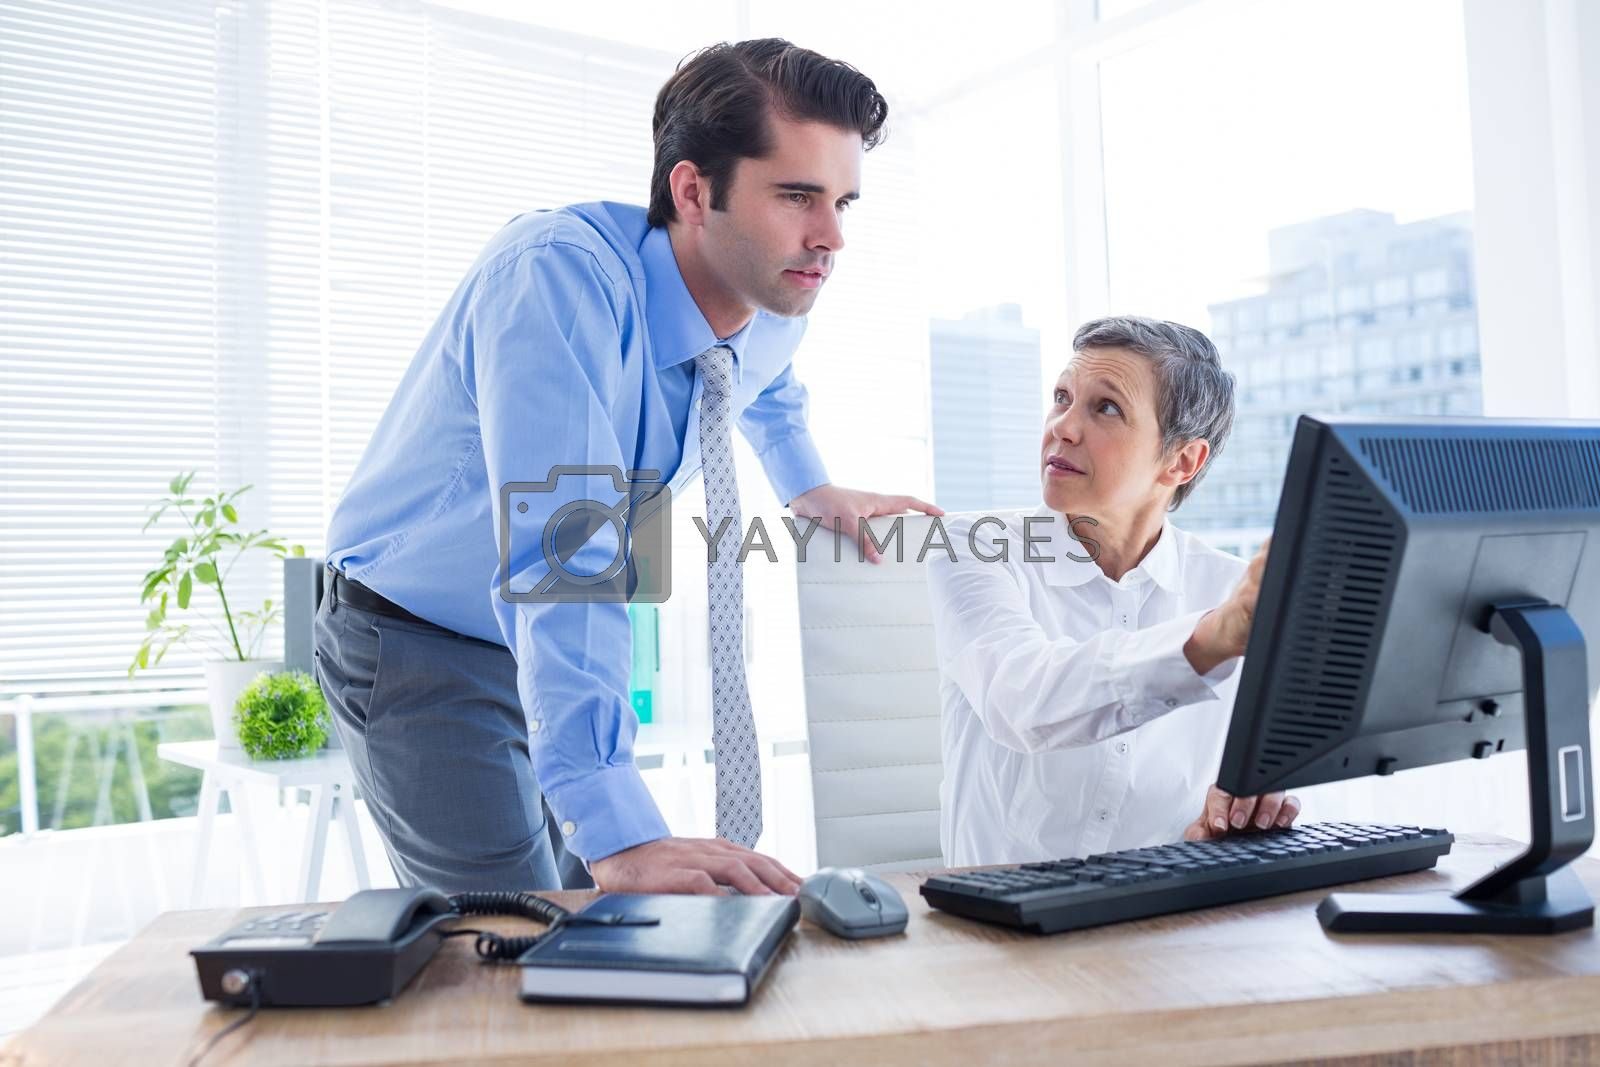 Royalty free image of Business people working together on laptop by Wavebreakmedia